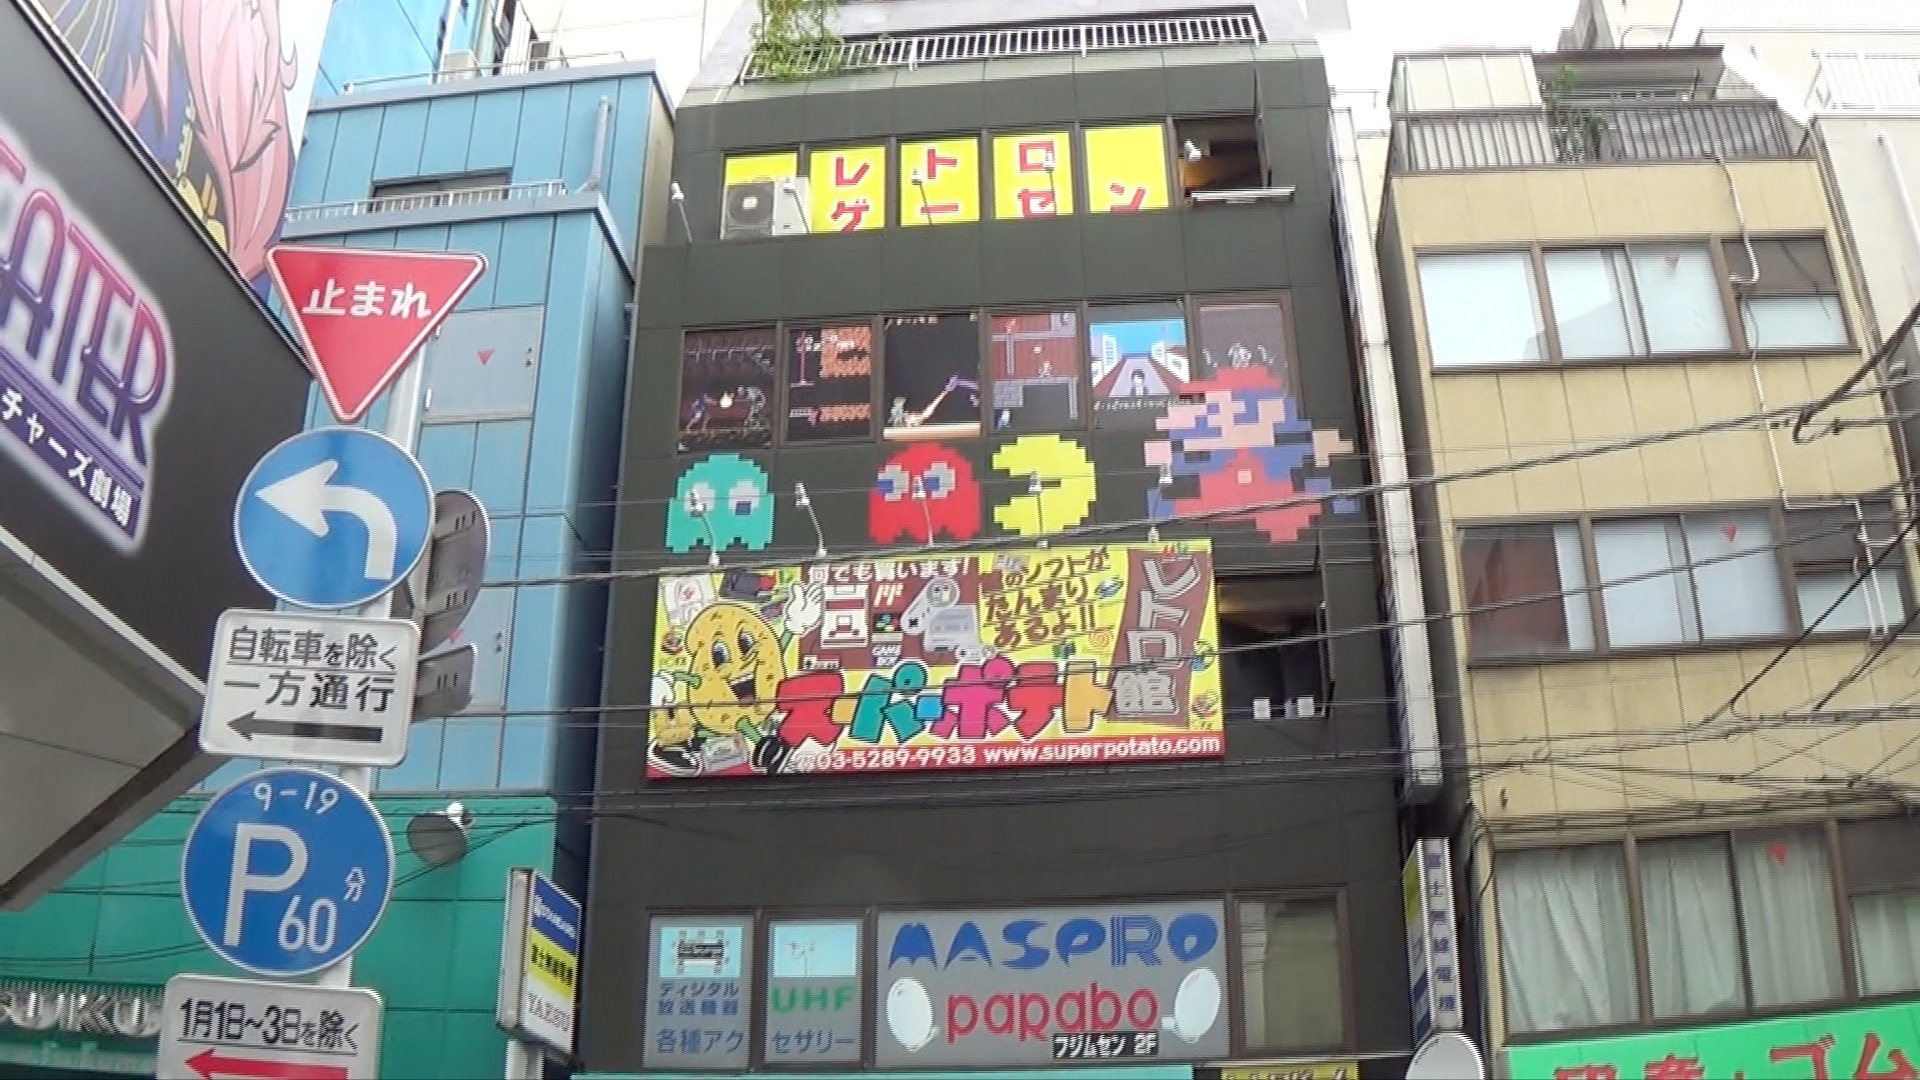 The Best Video Game Store in the World